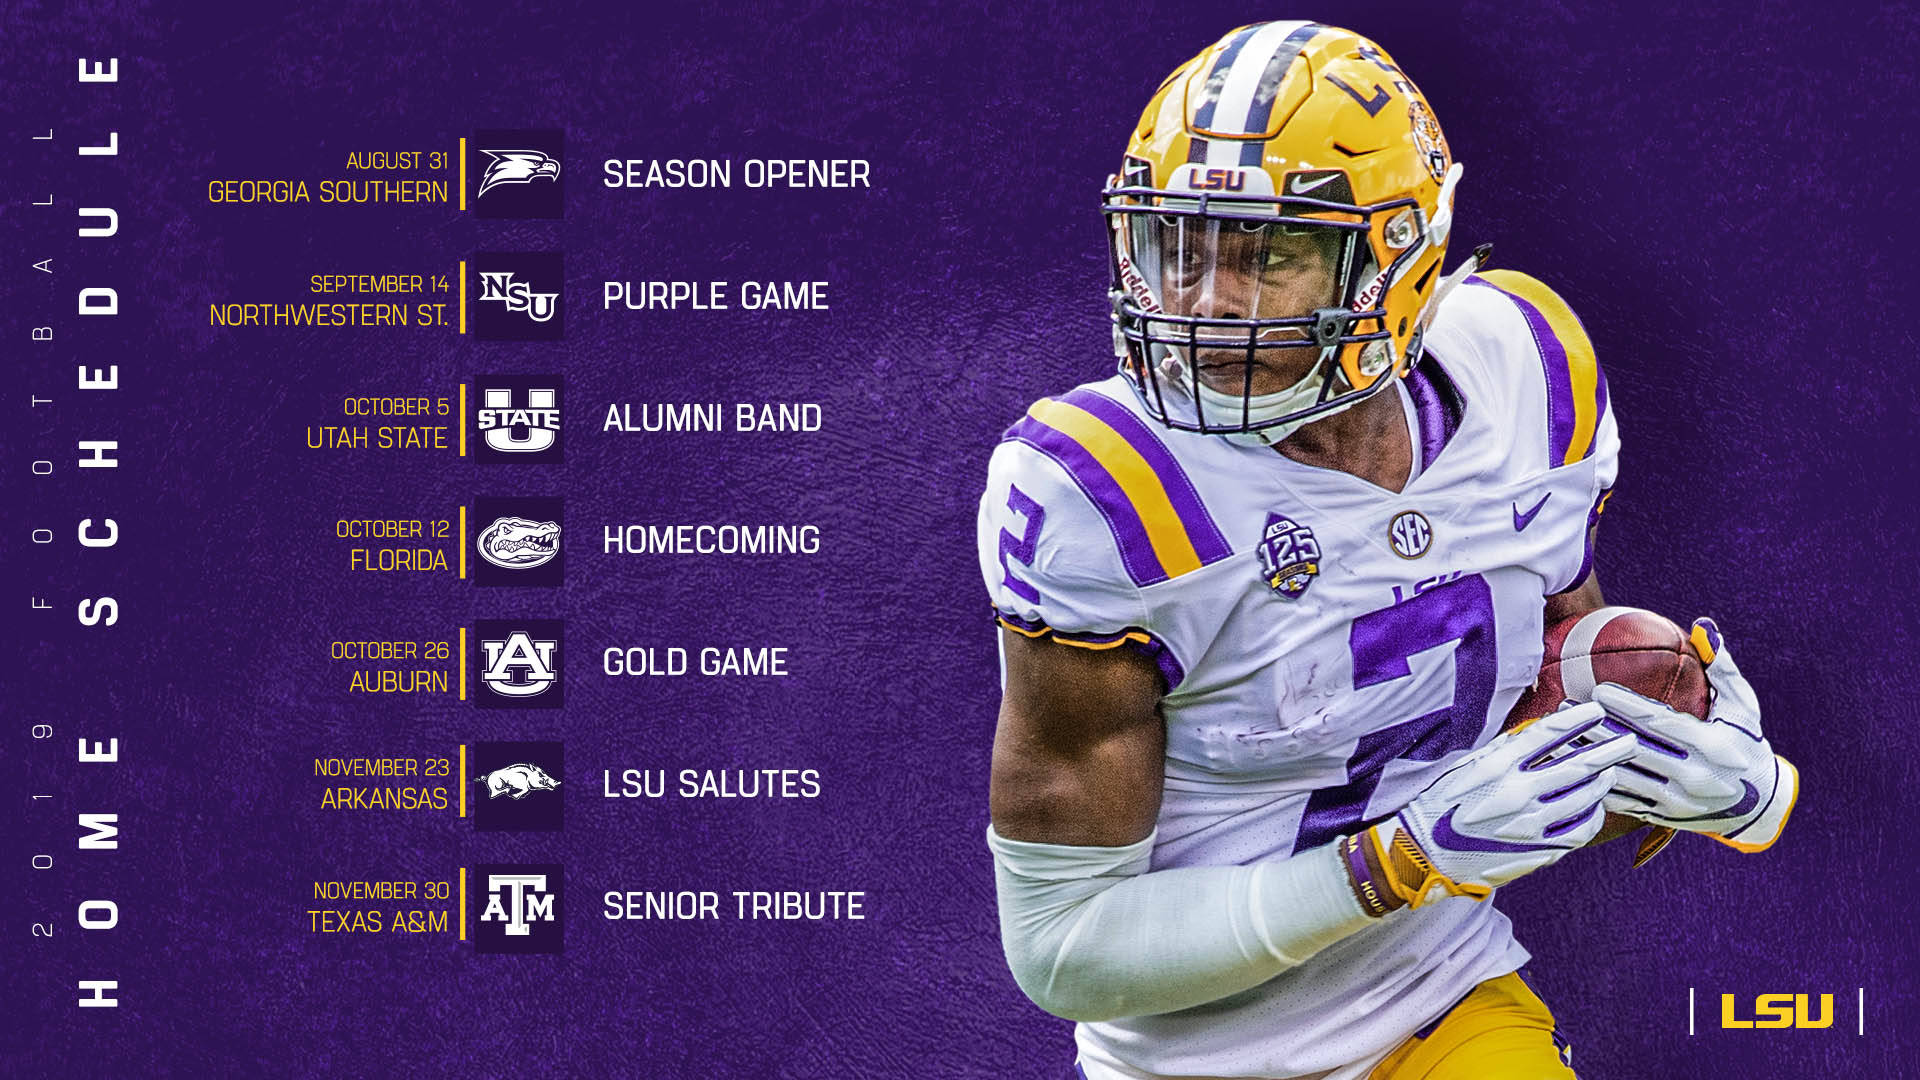 LSU 2019 Football Schedule released